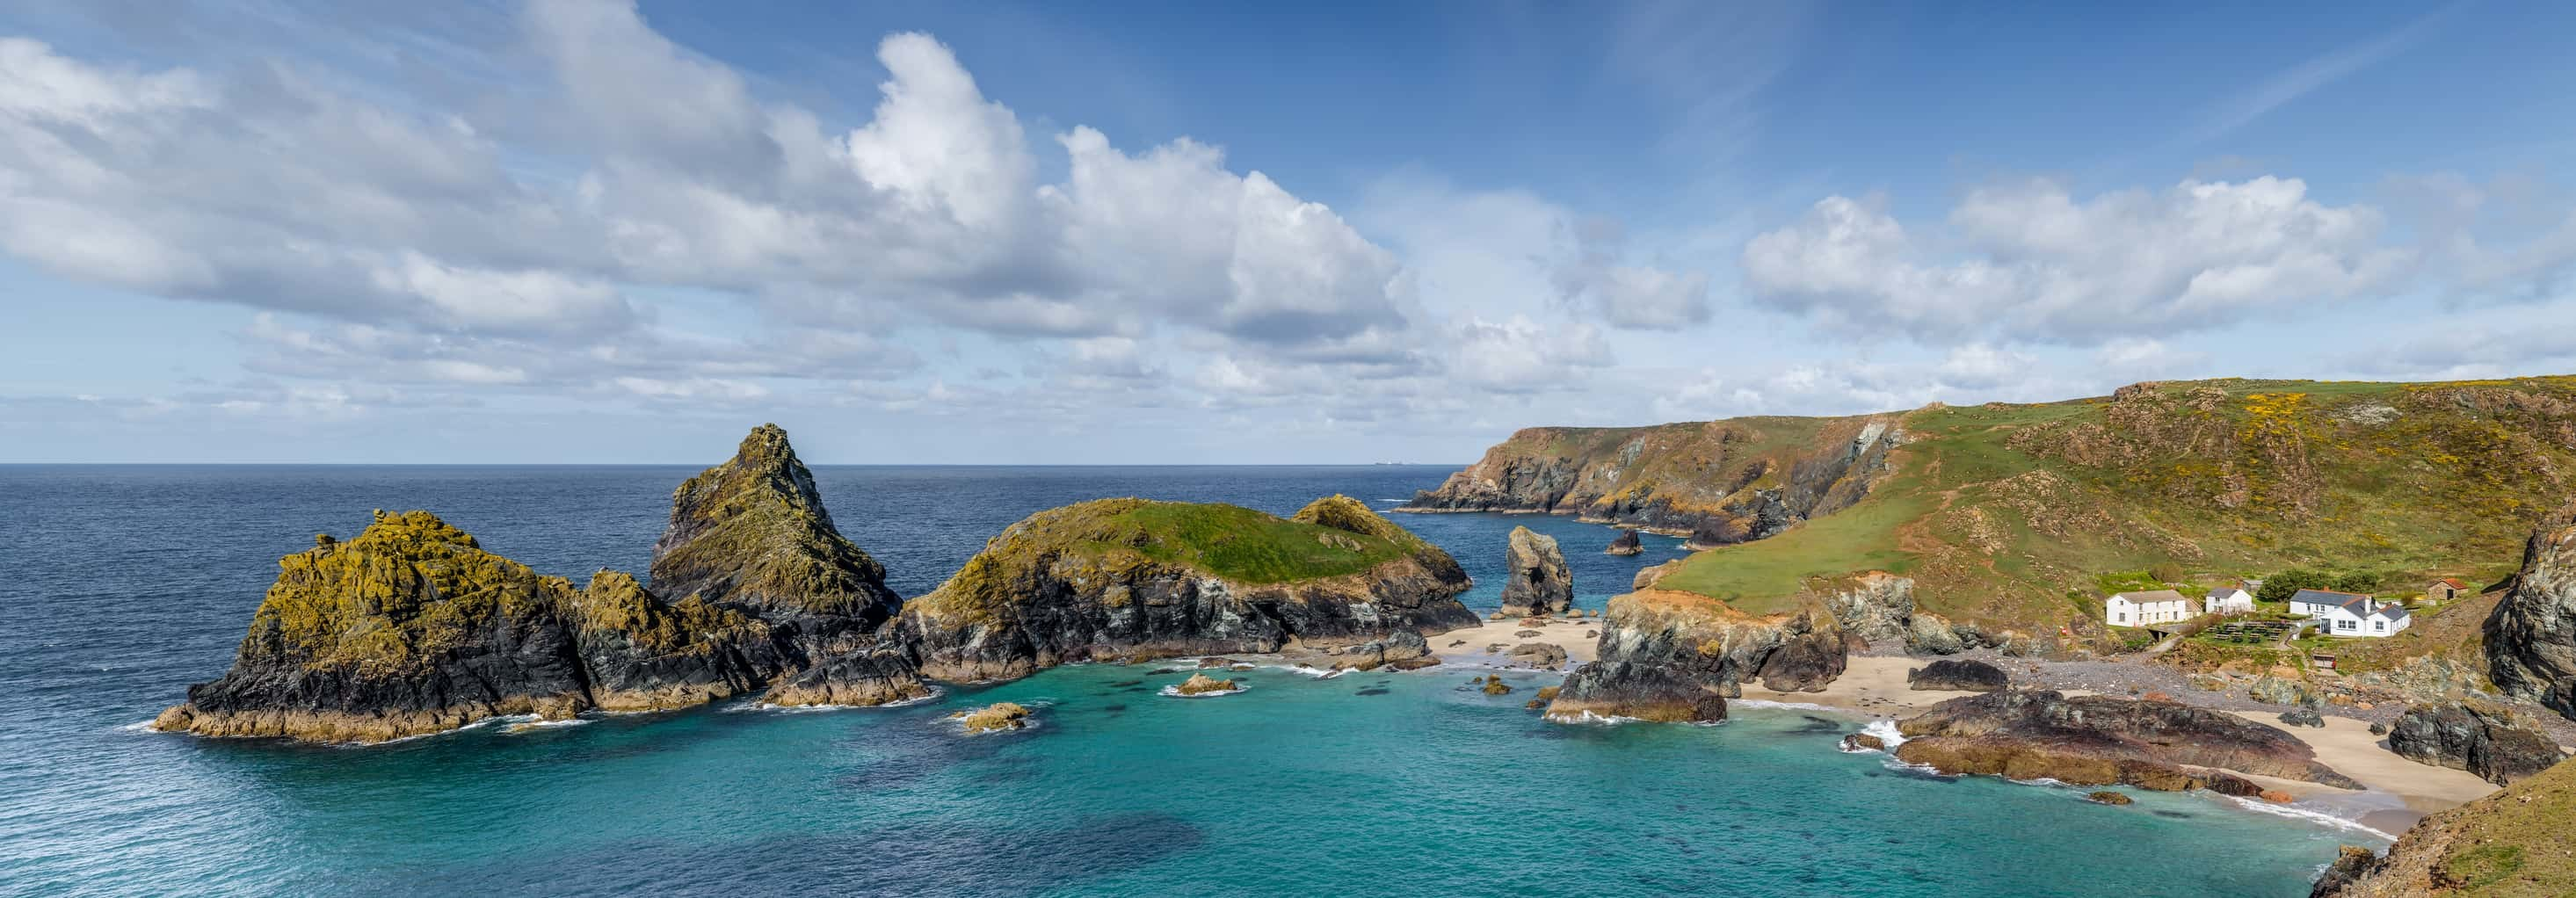 Panoramic photograph of a beautiful Spring day on the west coast of Cornwall at Kynance Cove. UK